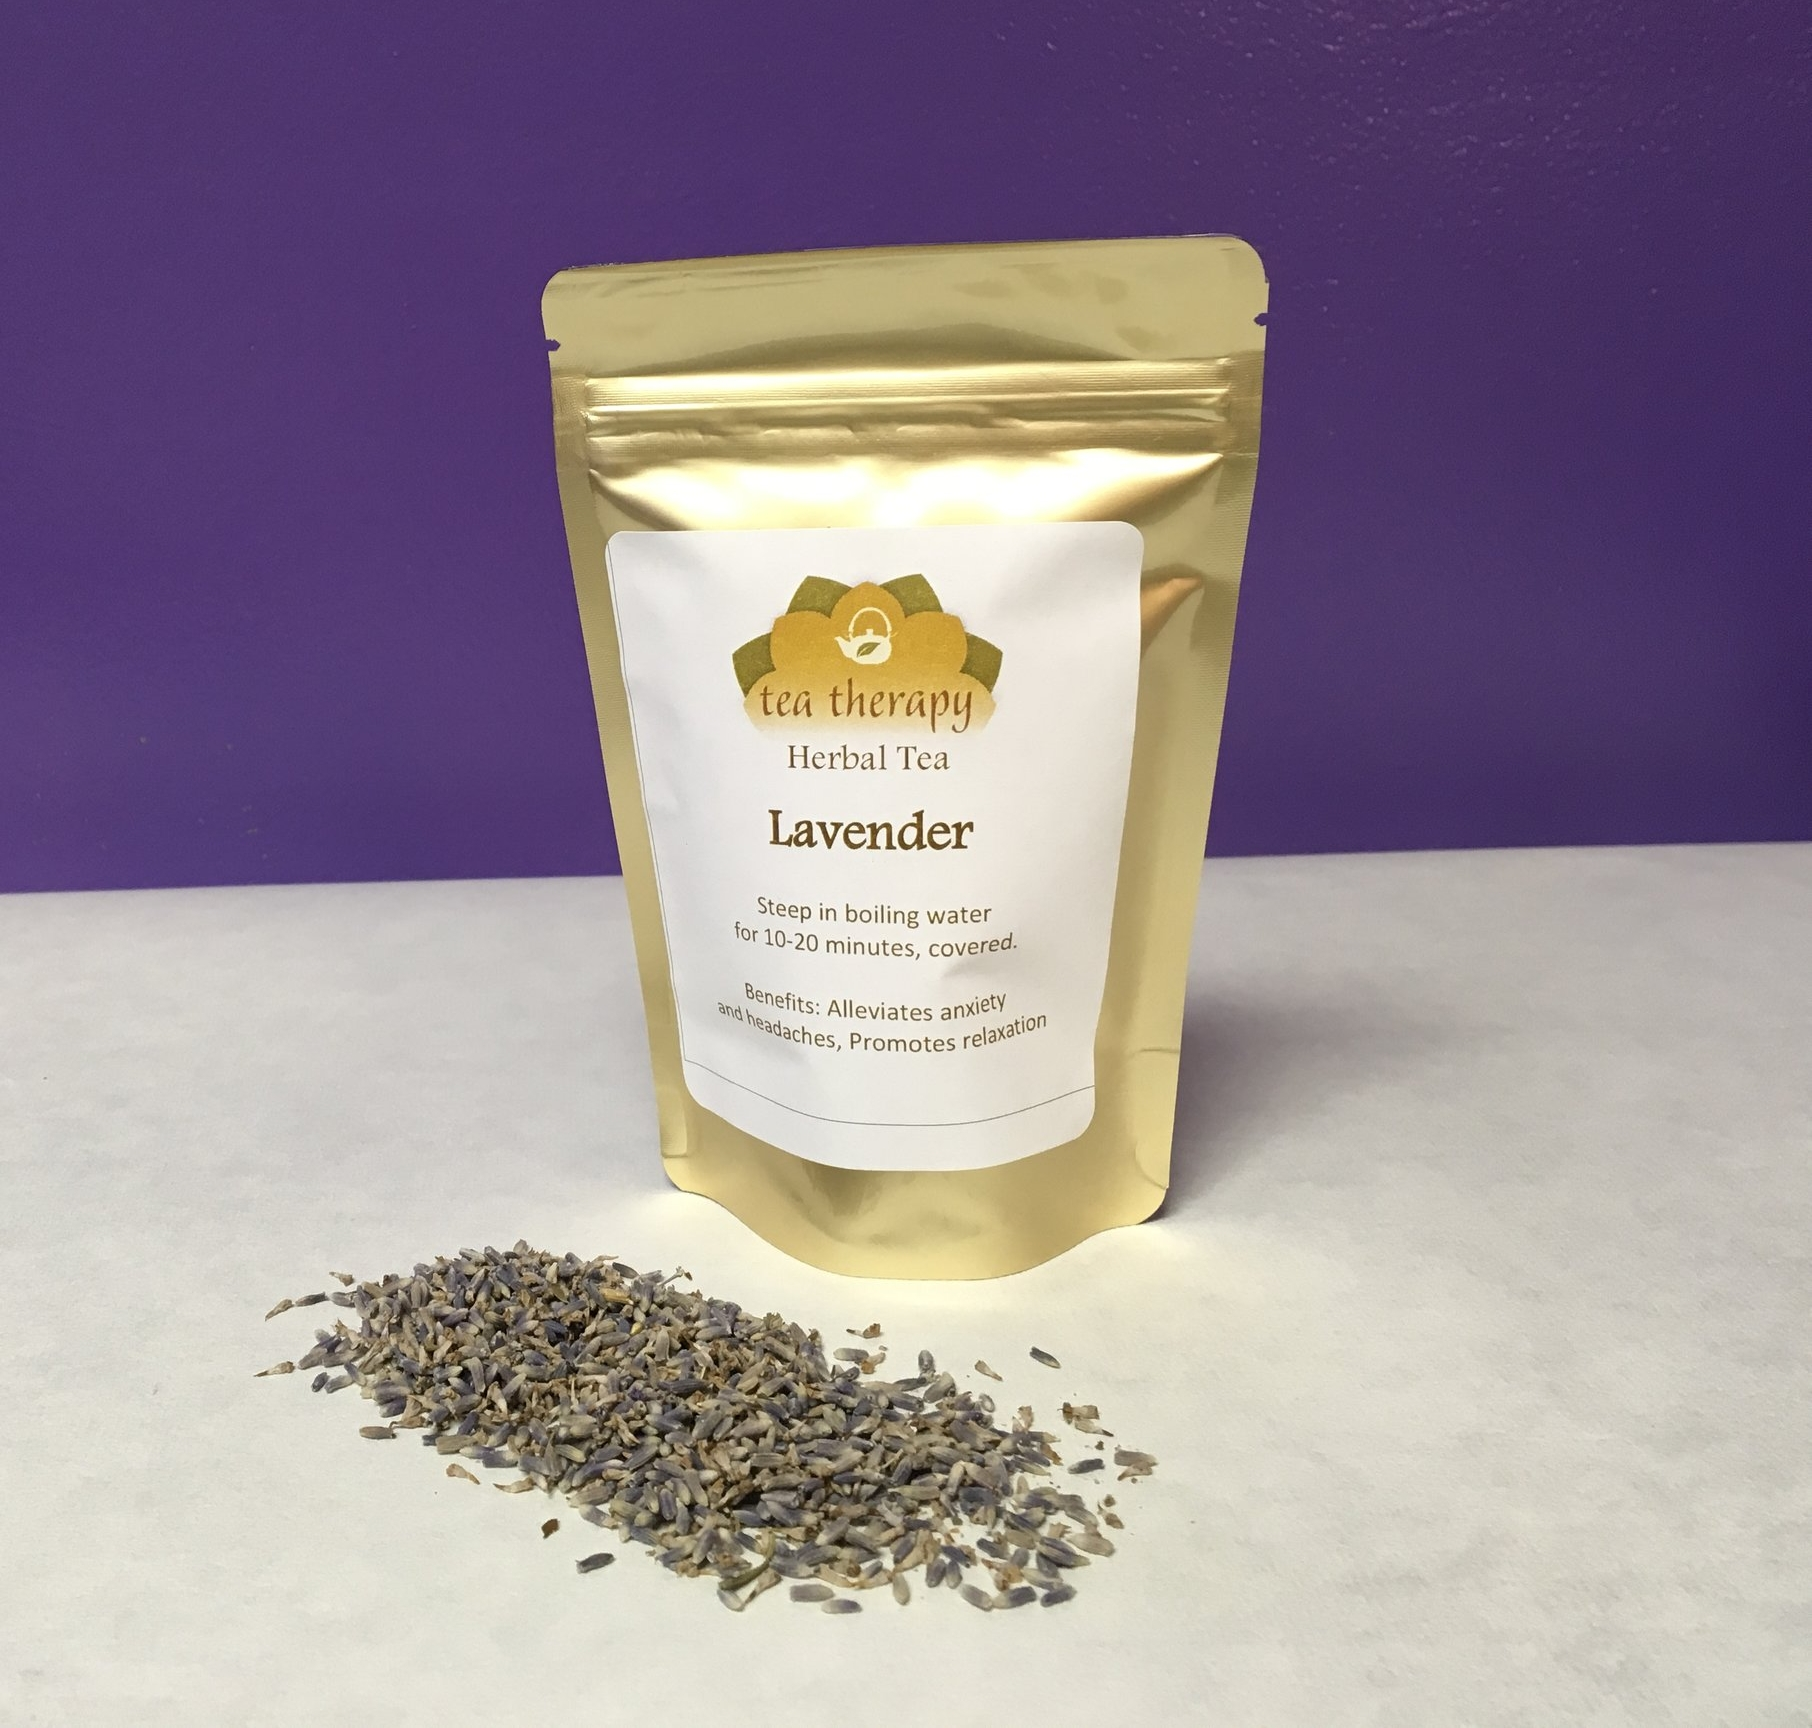 Lavender - Herbal tea – non-caffeinated – Benefits: Alleviates anxiety and headaches, promotes relaxation.